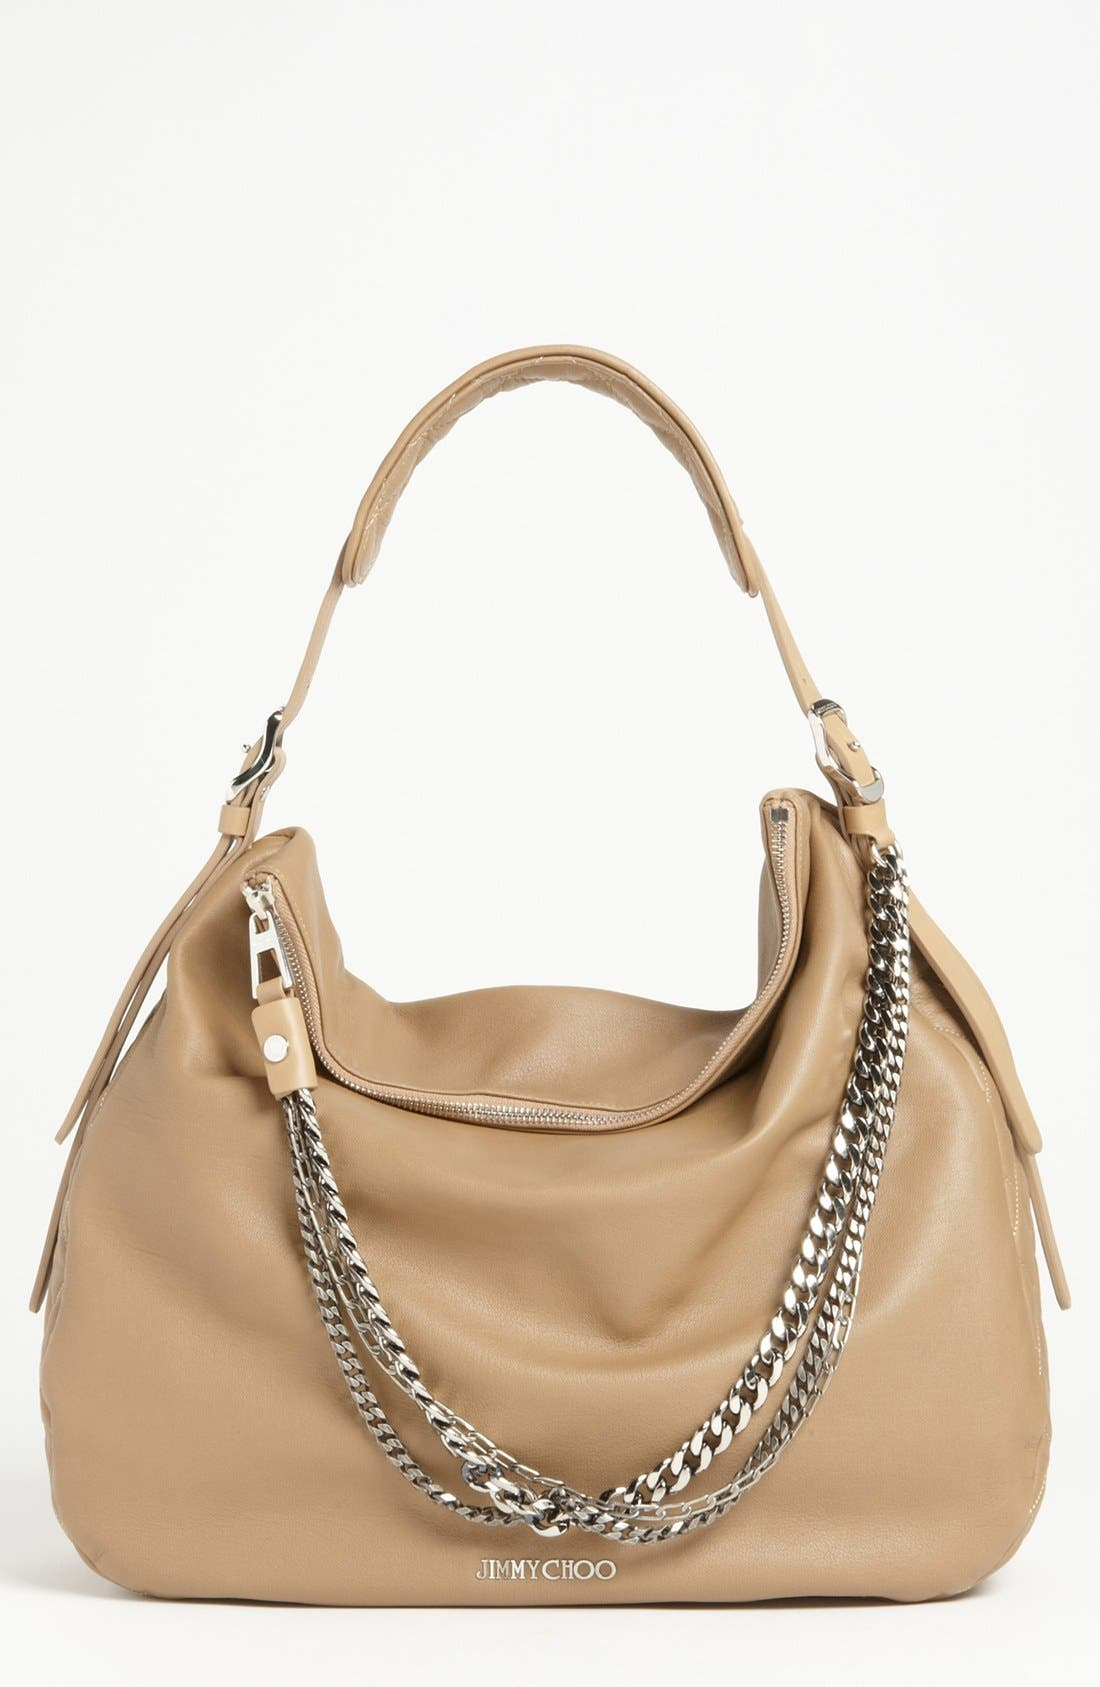 Main Image - Jimmy Choo 'Large Boho' Leather Hobo